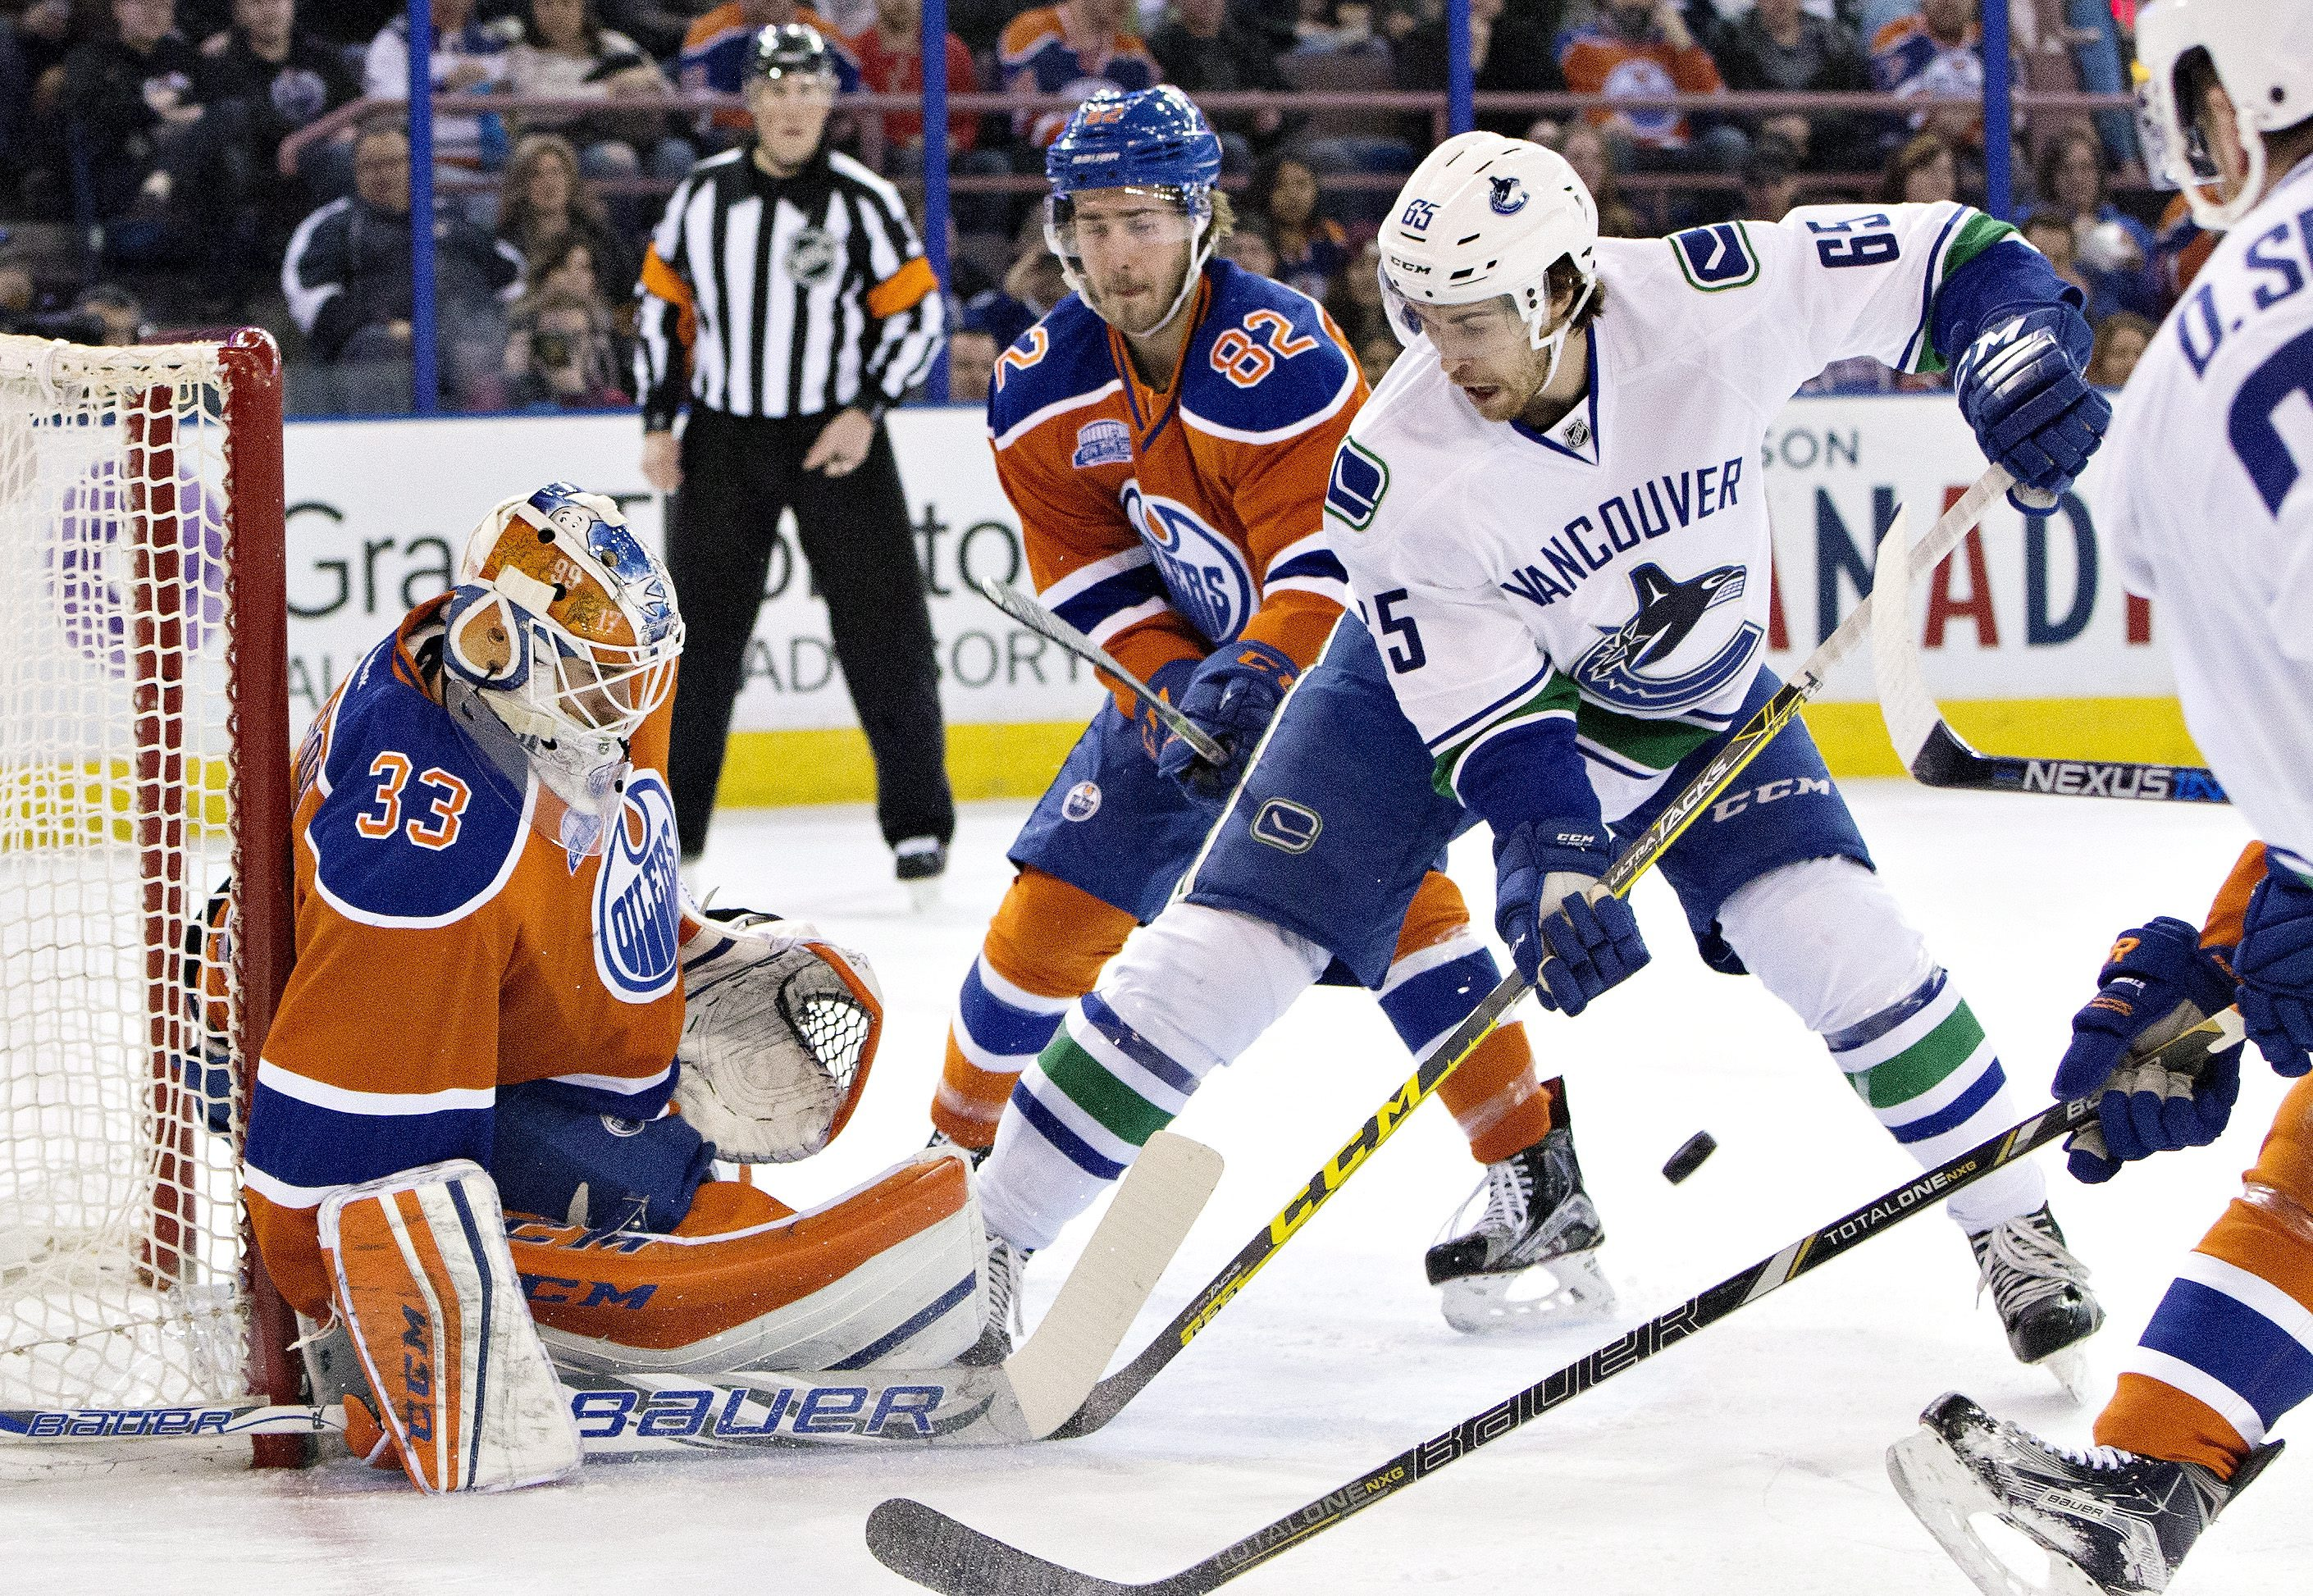 Vancouver Canucks' Alexandre Grenier (65) is stopped by Edmonton Oilers' goalie Cam Talbot (33) as Jordan Oesterle (82) defends during the first period of an NHL hockey game, Friday, March 18, 2016 in Edmonton, Alberta.  (Jason Franson/The Canadian Press